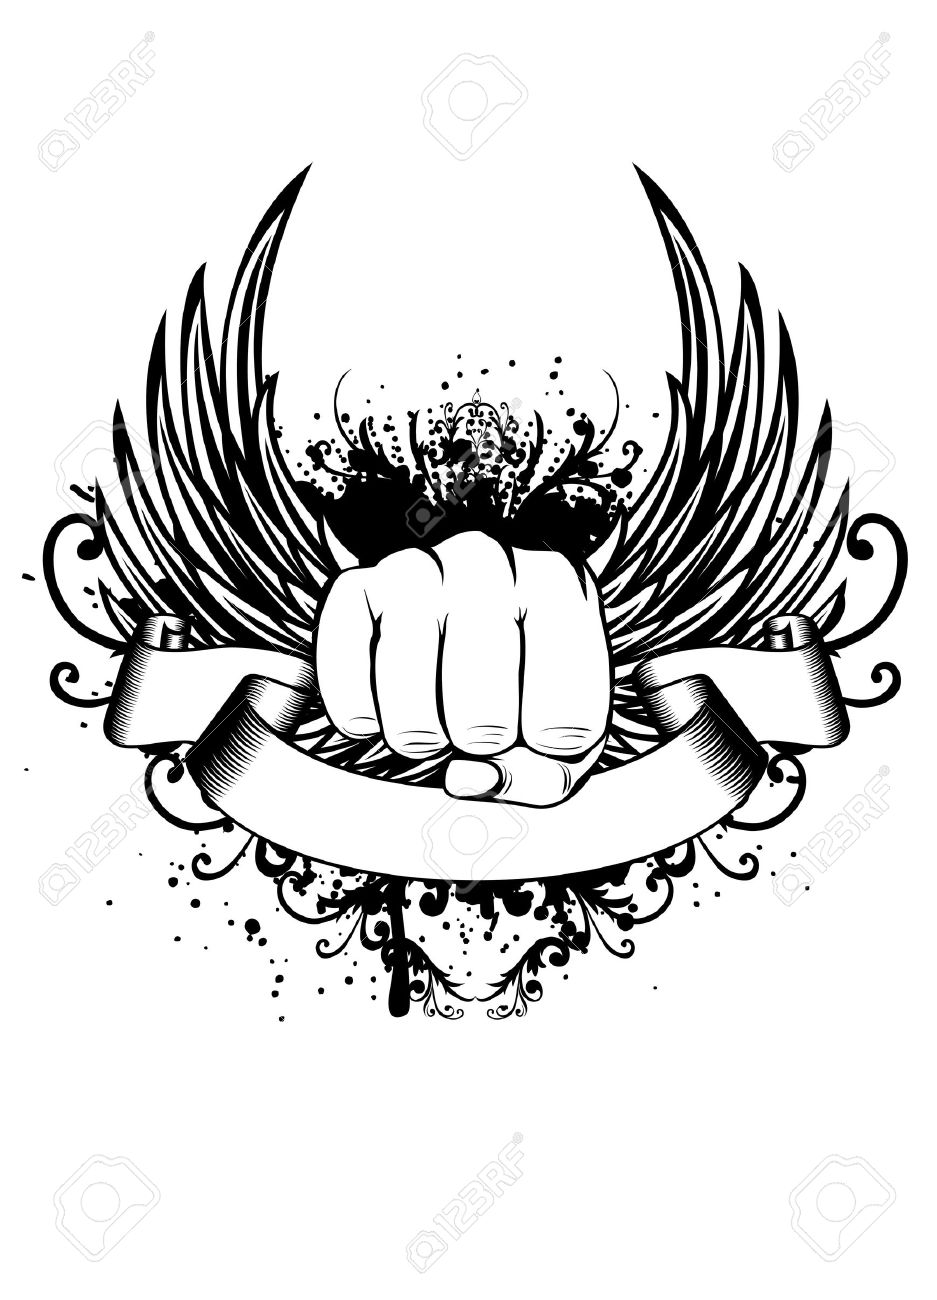 Shirt design pictures - Vector Vector Illustration T Shirt Design Fist And Wings